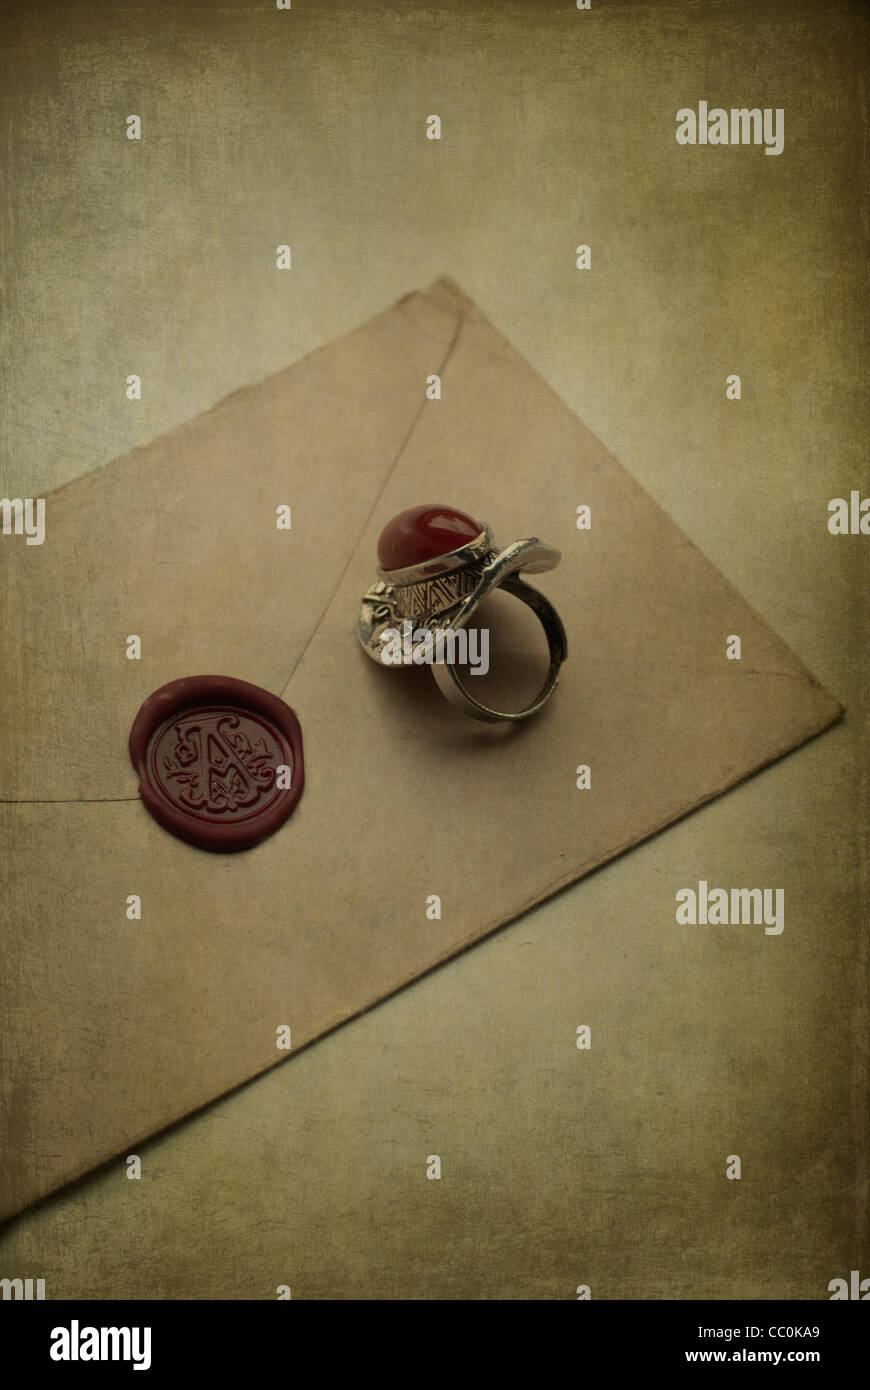 Old ring over a brown envelope sealed with red wax - Stock Image